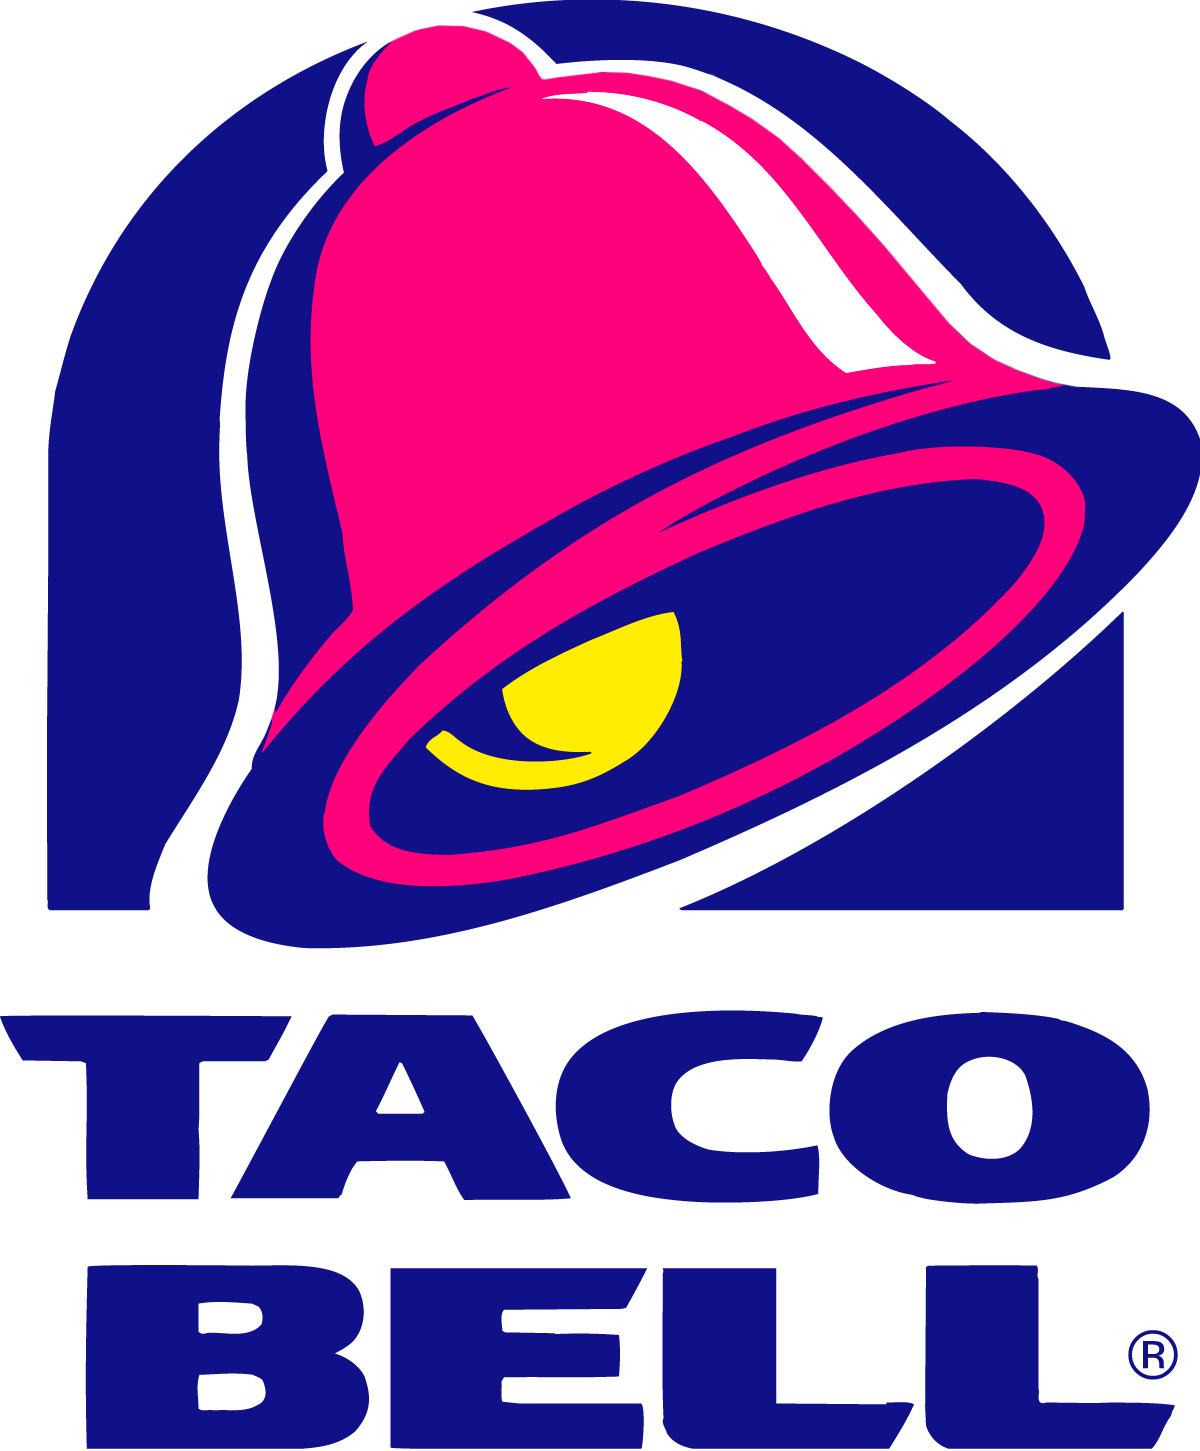 8 Taco Bell Logo Vector Images